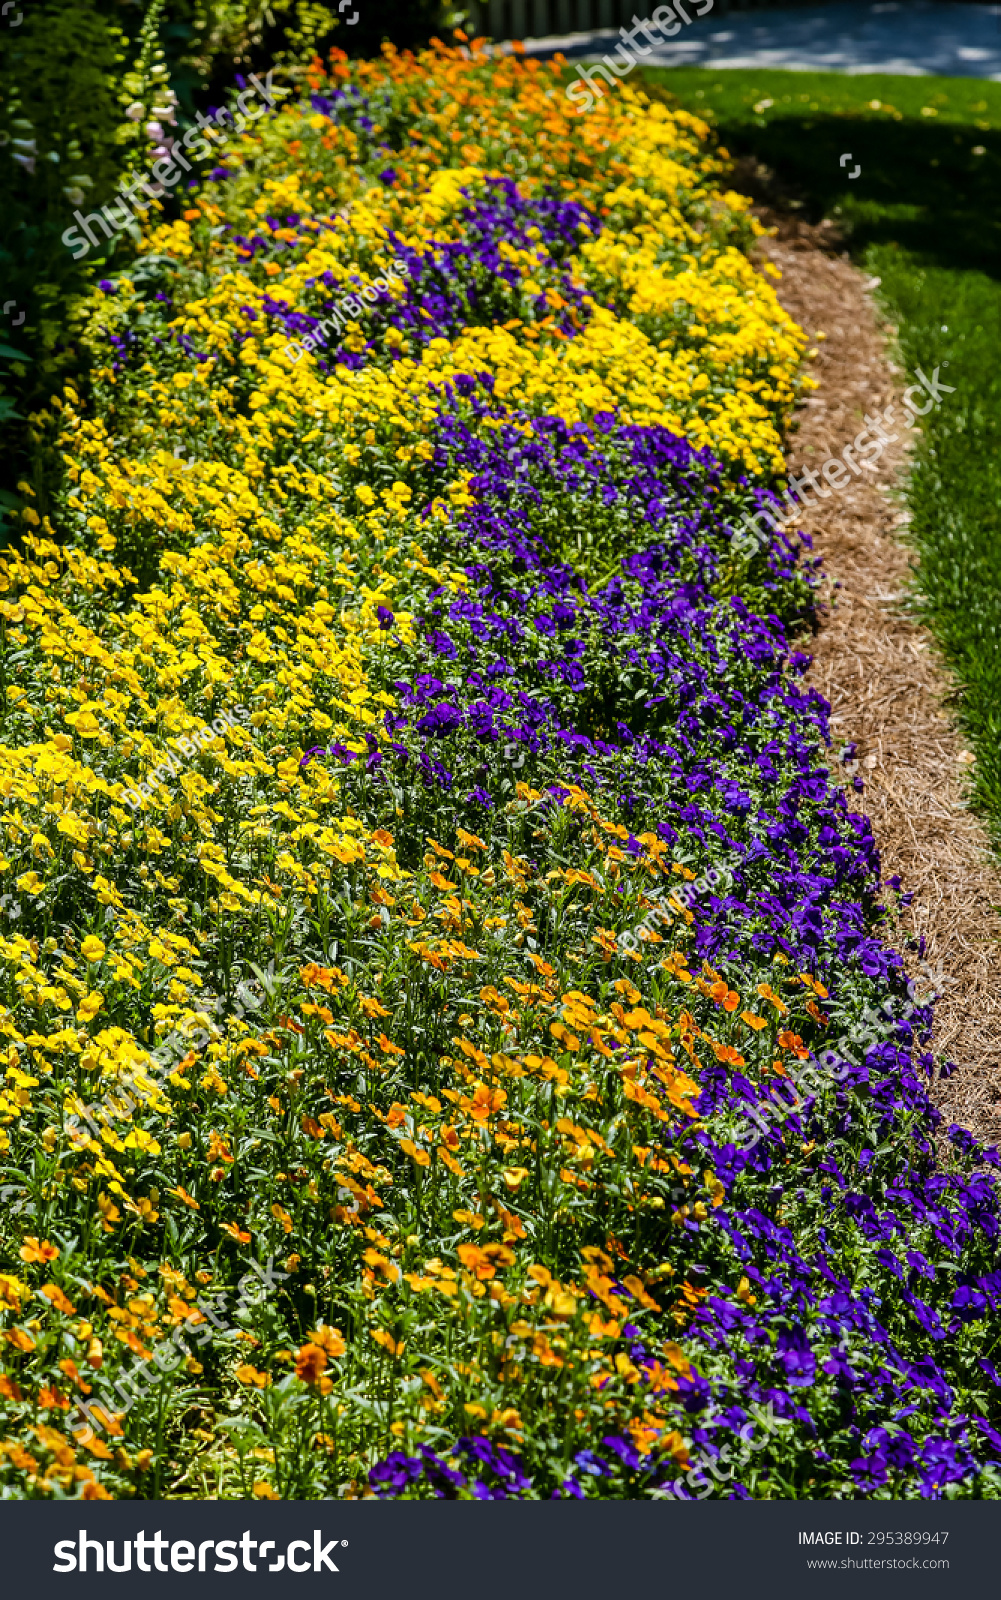 Bed Orange Yellow Purple Flowers Garden Stock Photo Edit Now